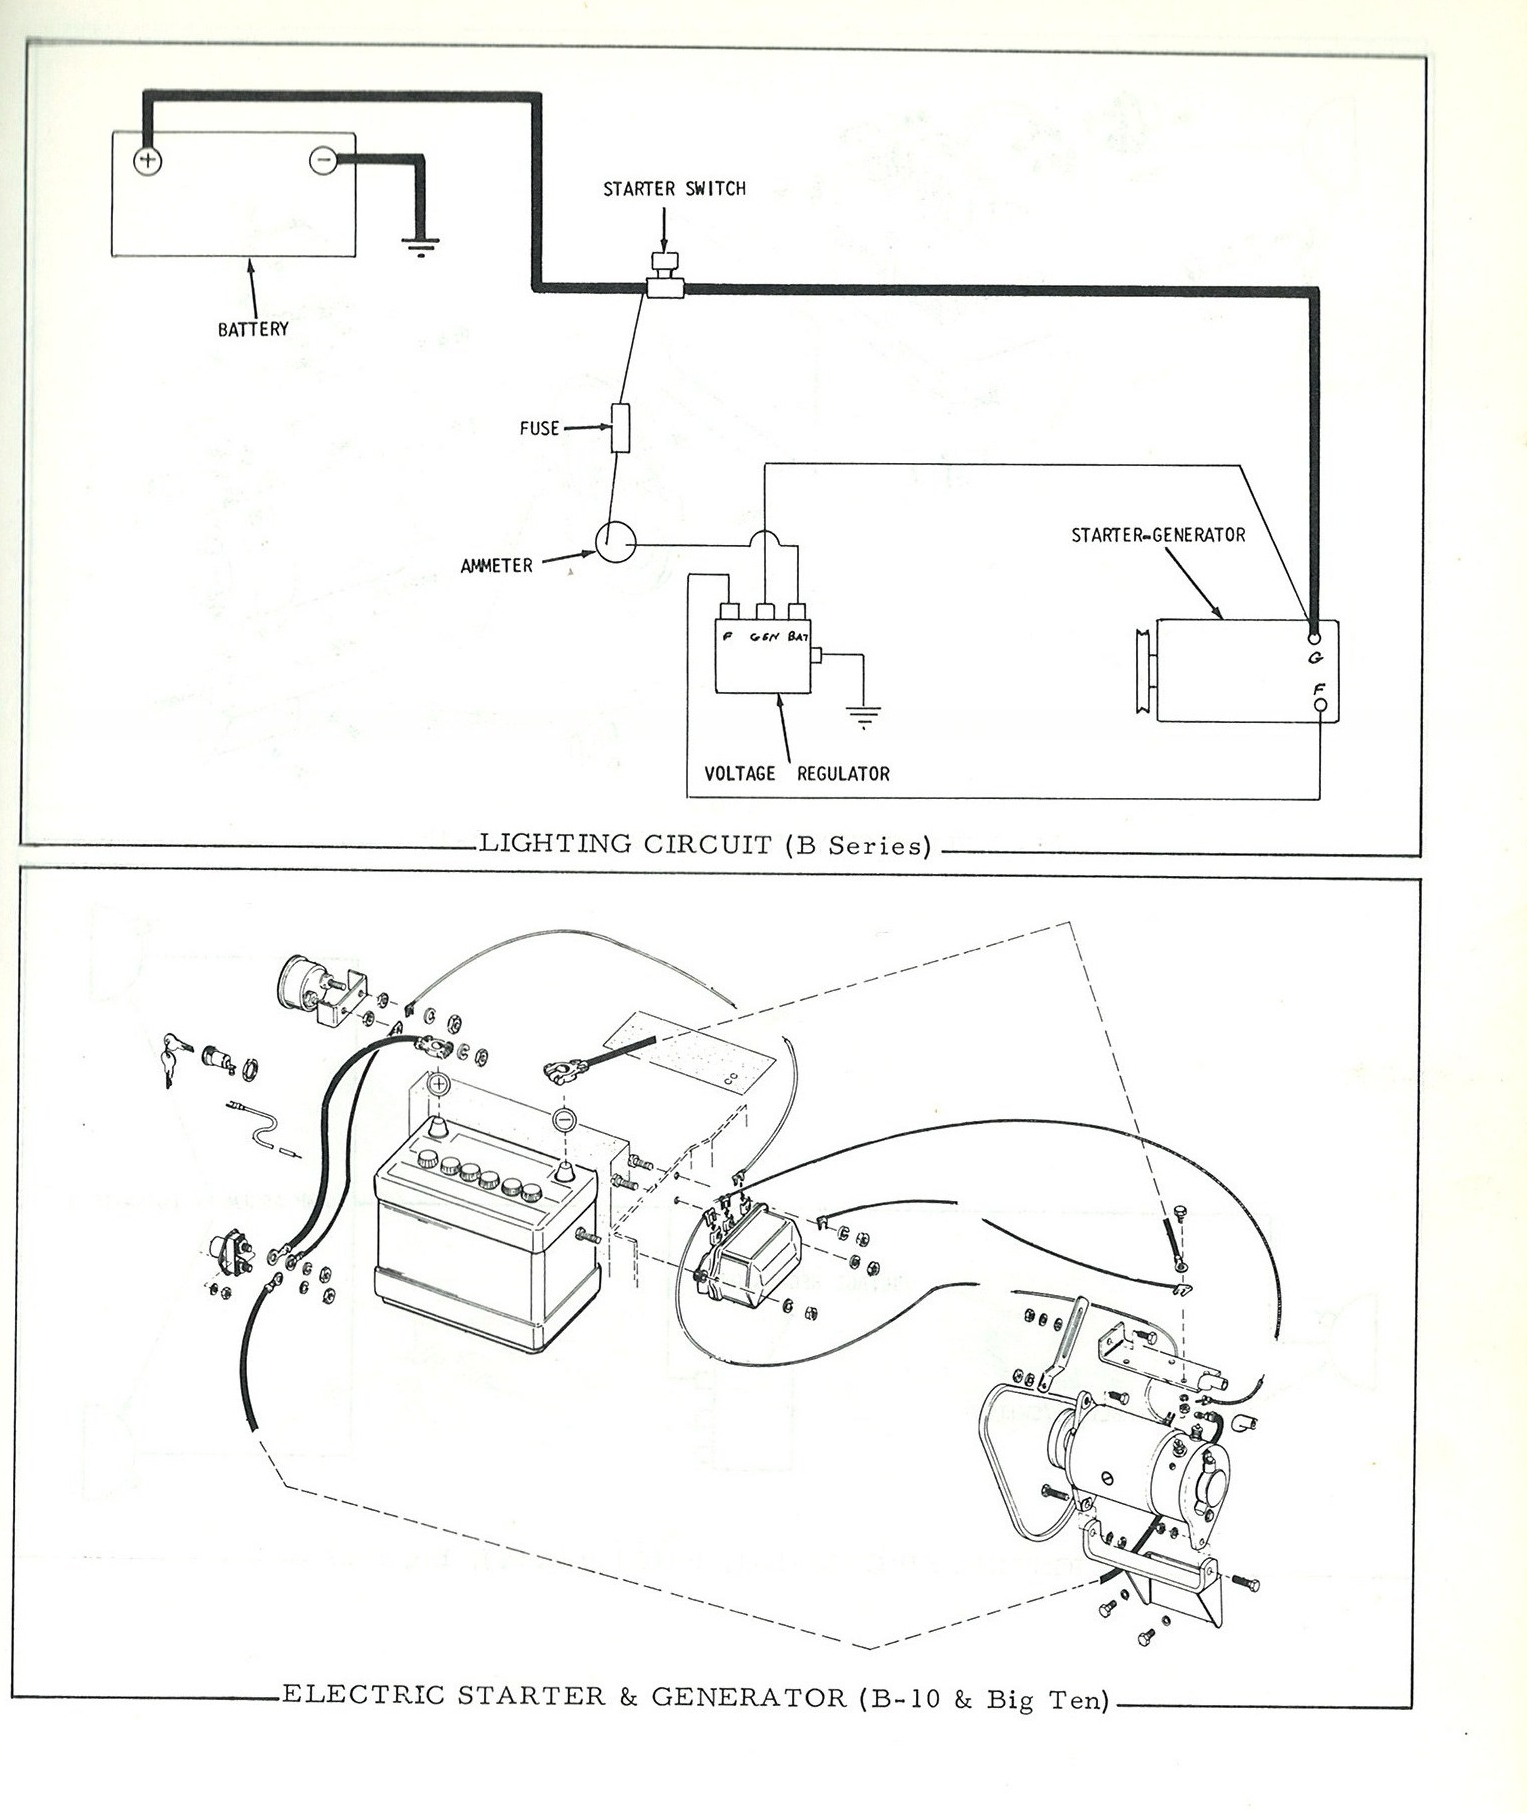 hight resolution of wire diagram allis chalmers b12 share circuit diagrams allis chalmers magneto wiring diagram